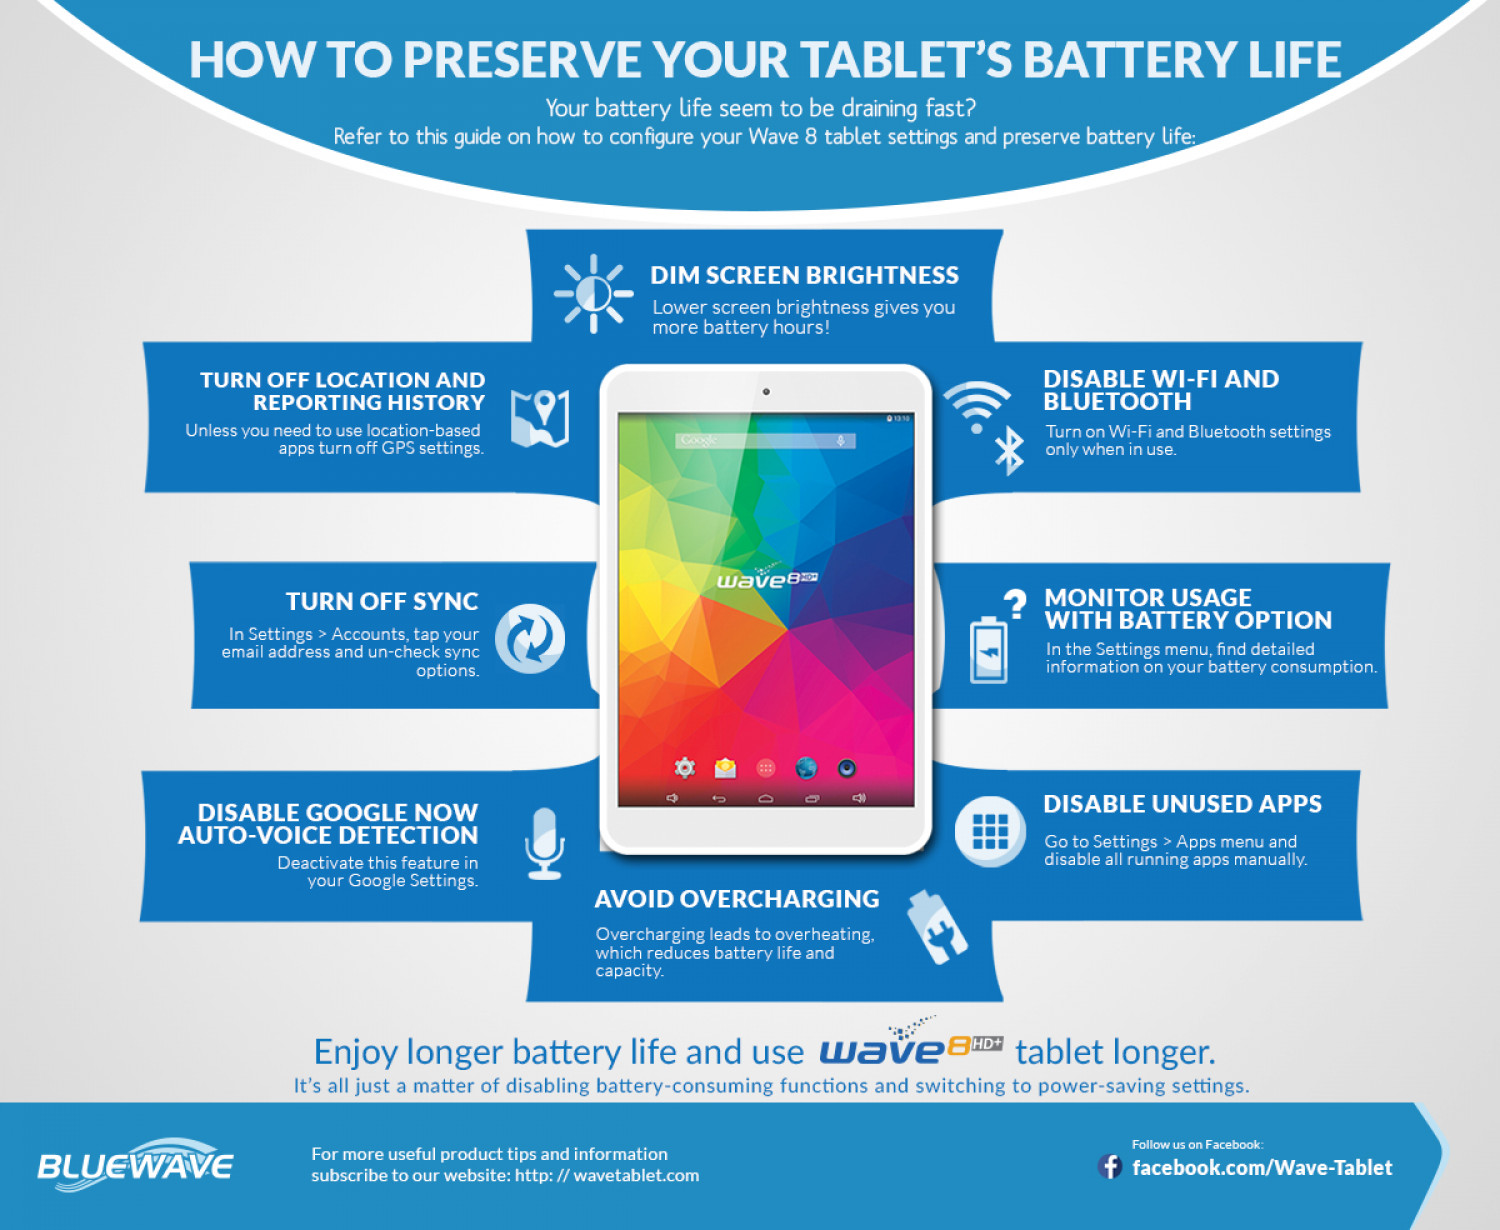 How to Preserve Your Tablet's Battery Life Infographic